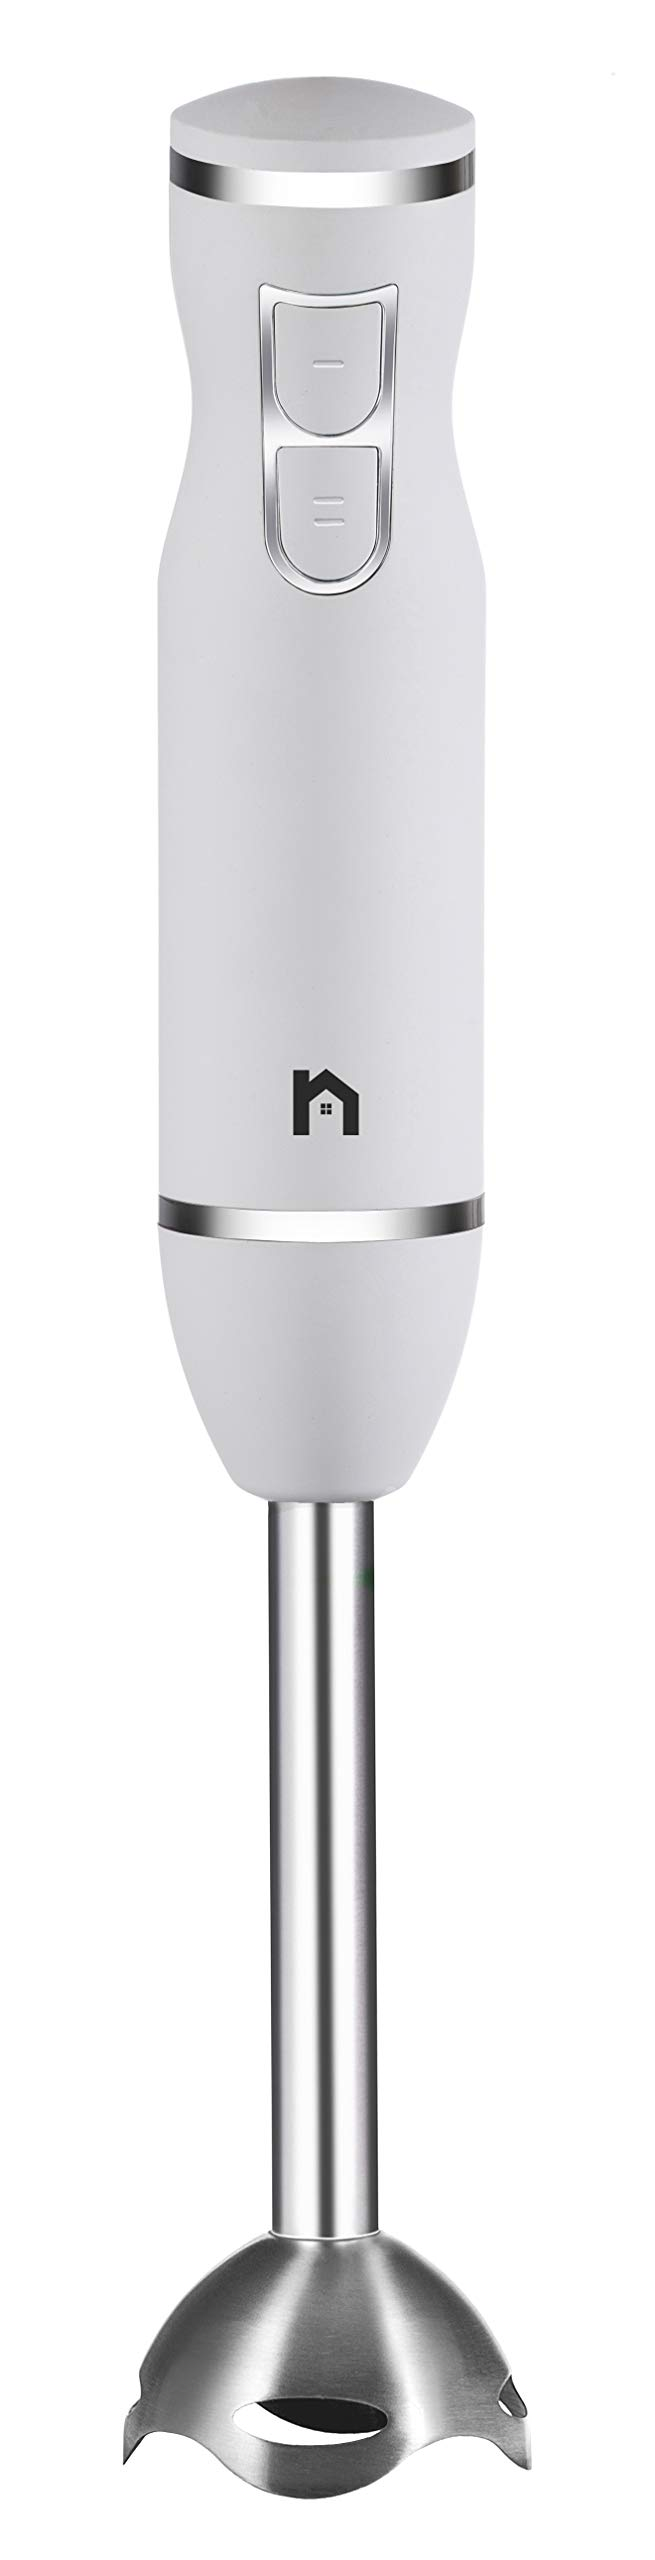 New House Kitchen Immersion Hand Blender 2 Speed Stick Mixer with Stainless Steel Shaft & Blade, 300 Watts Easily Food, Mixes Sauces, Purees Soups, Smoothies, and Dips, Ivory